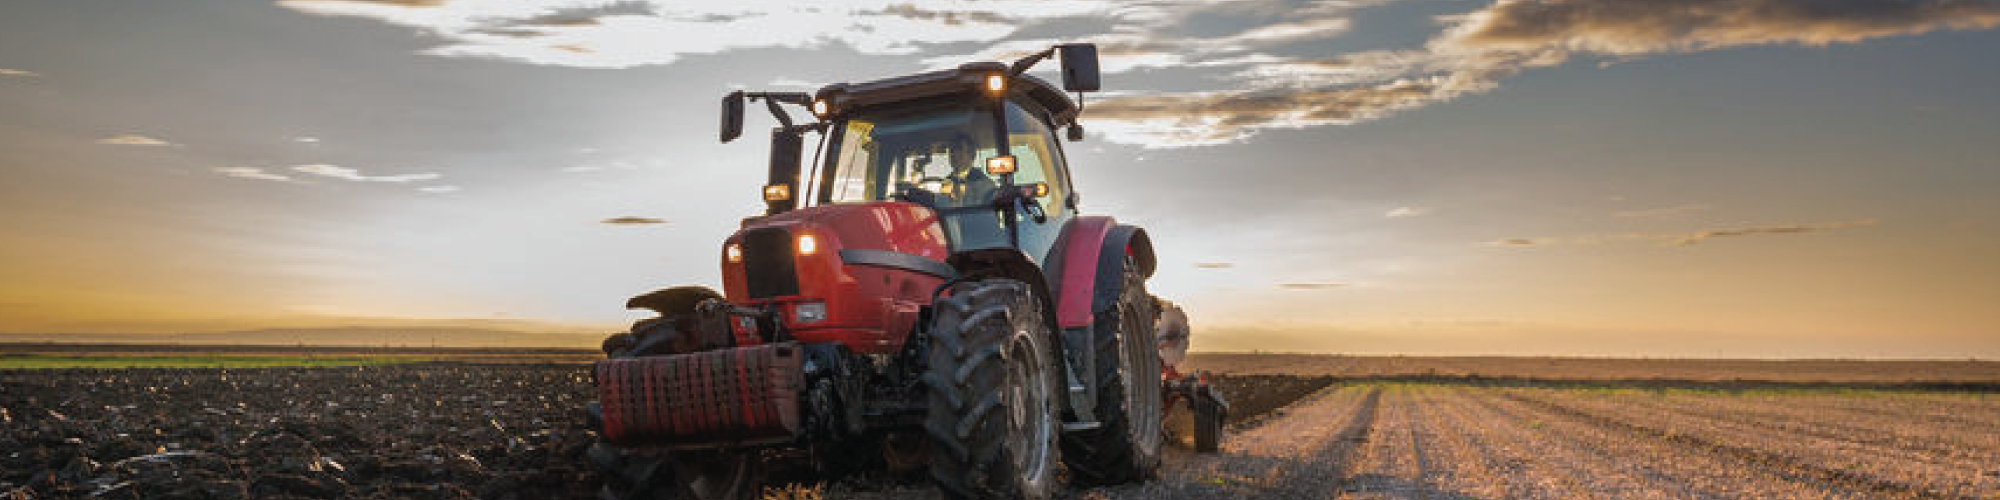 How to Determine Used Heavy Equipment Pricing